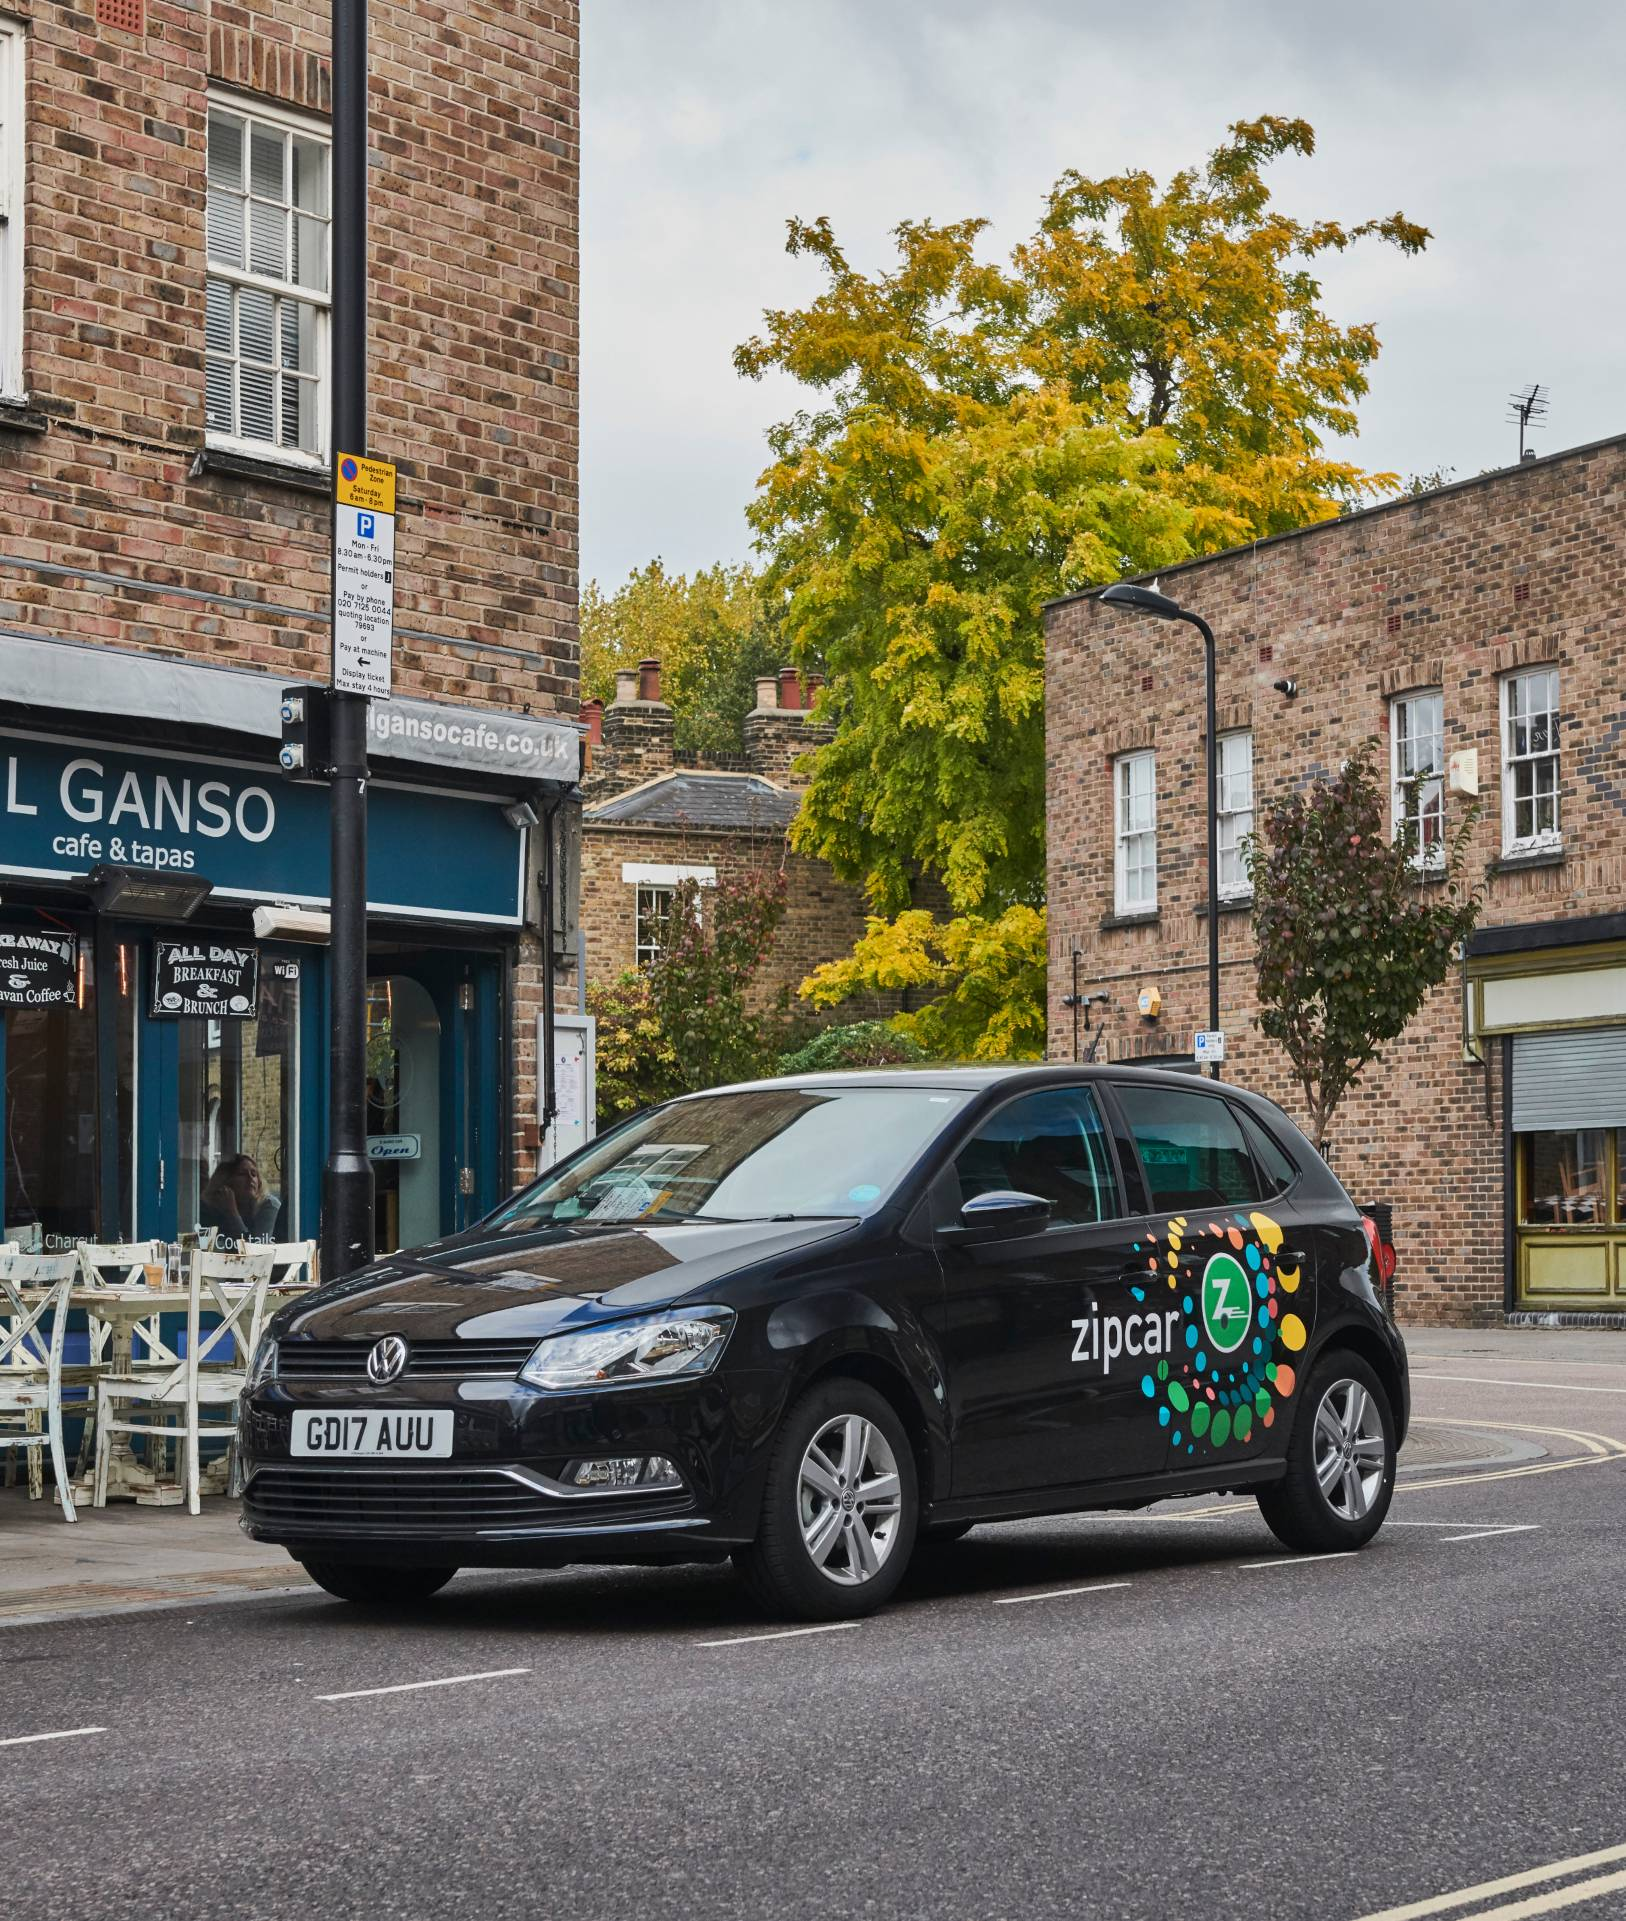 zipcar in hackney